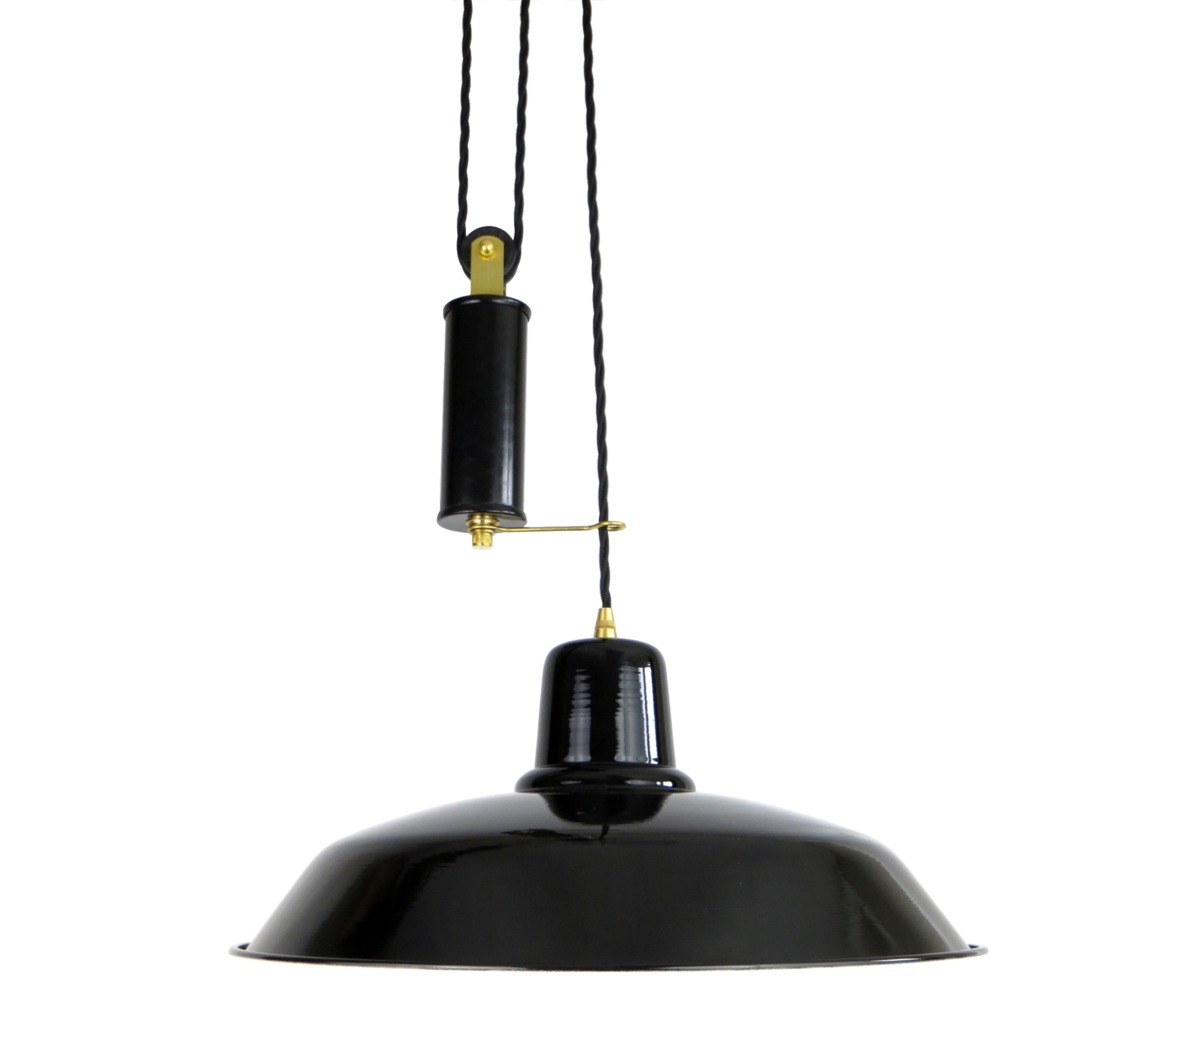 Industrial Rise And Fall Pendant Light: Lighting > Pendant Lights > Old School Rise & Fall Light